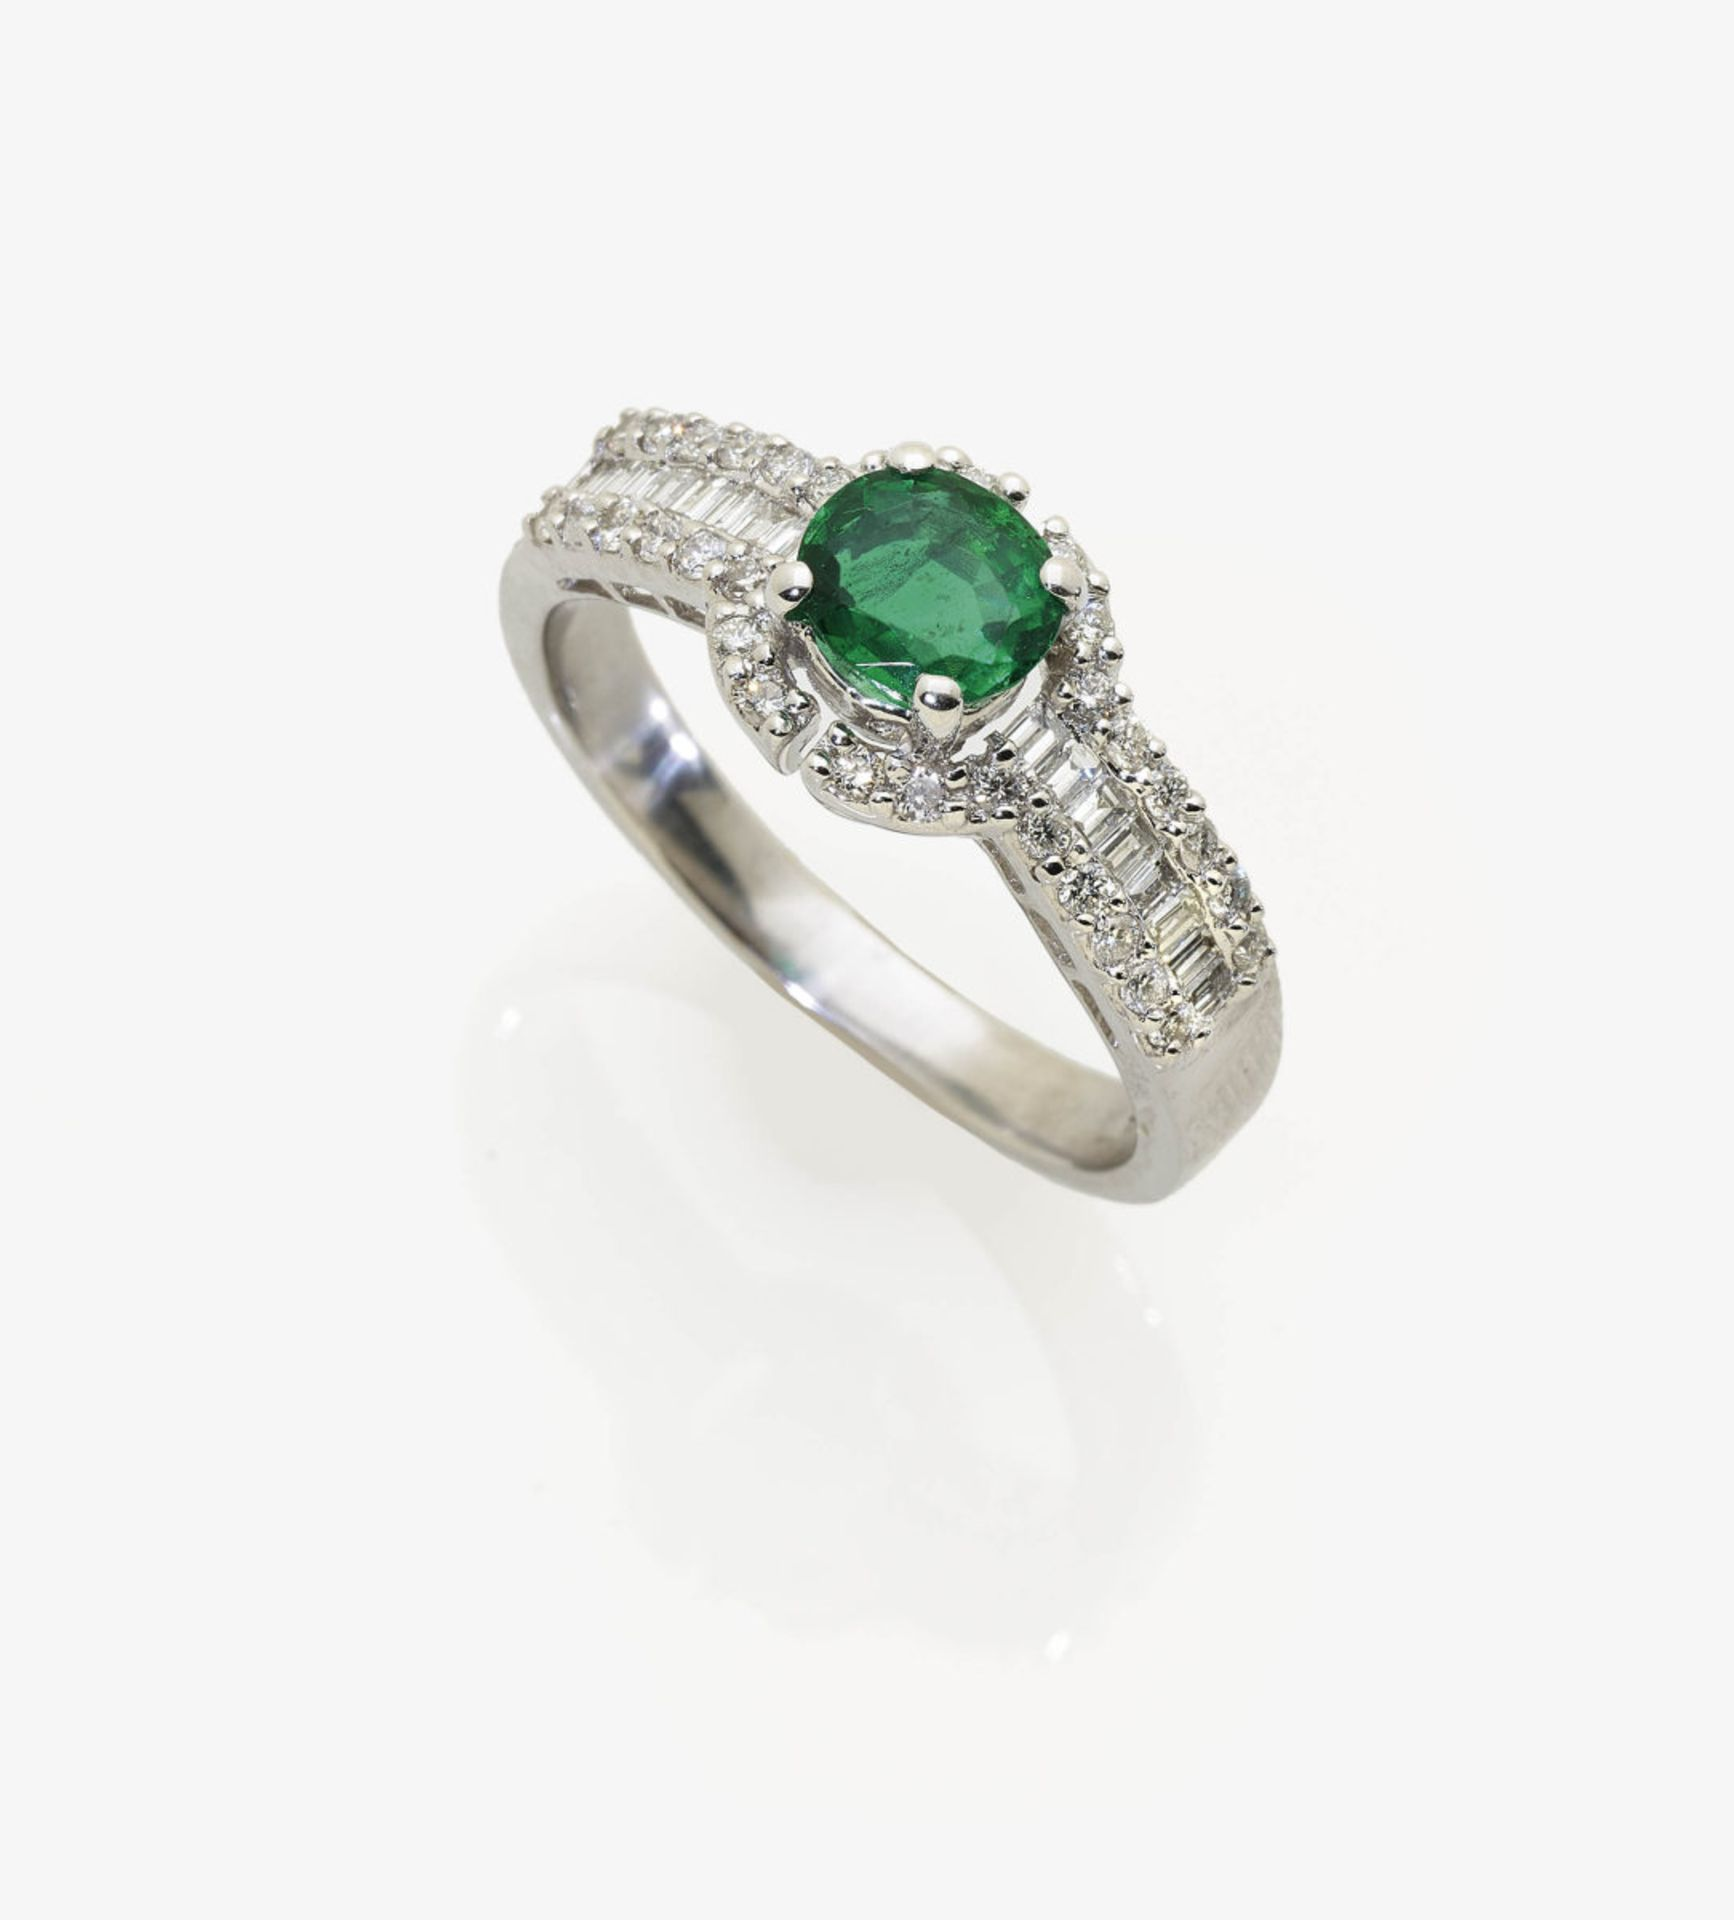 Los 1057 - An Emerald and Diamond Cluster Ring